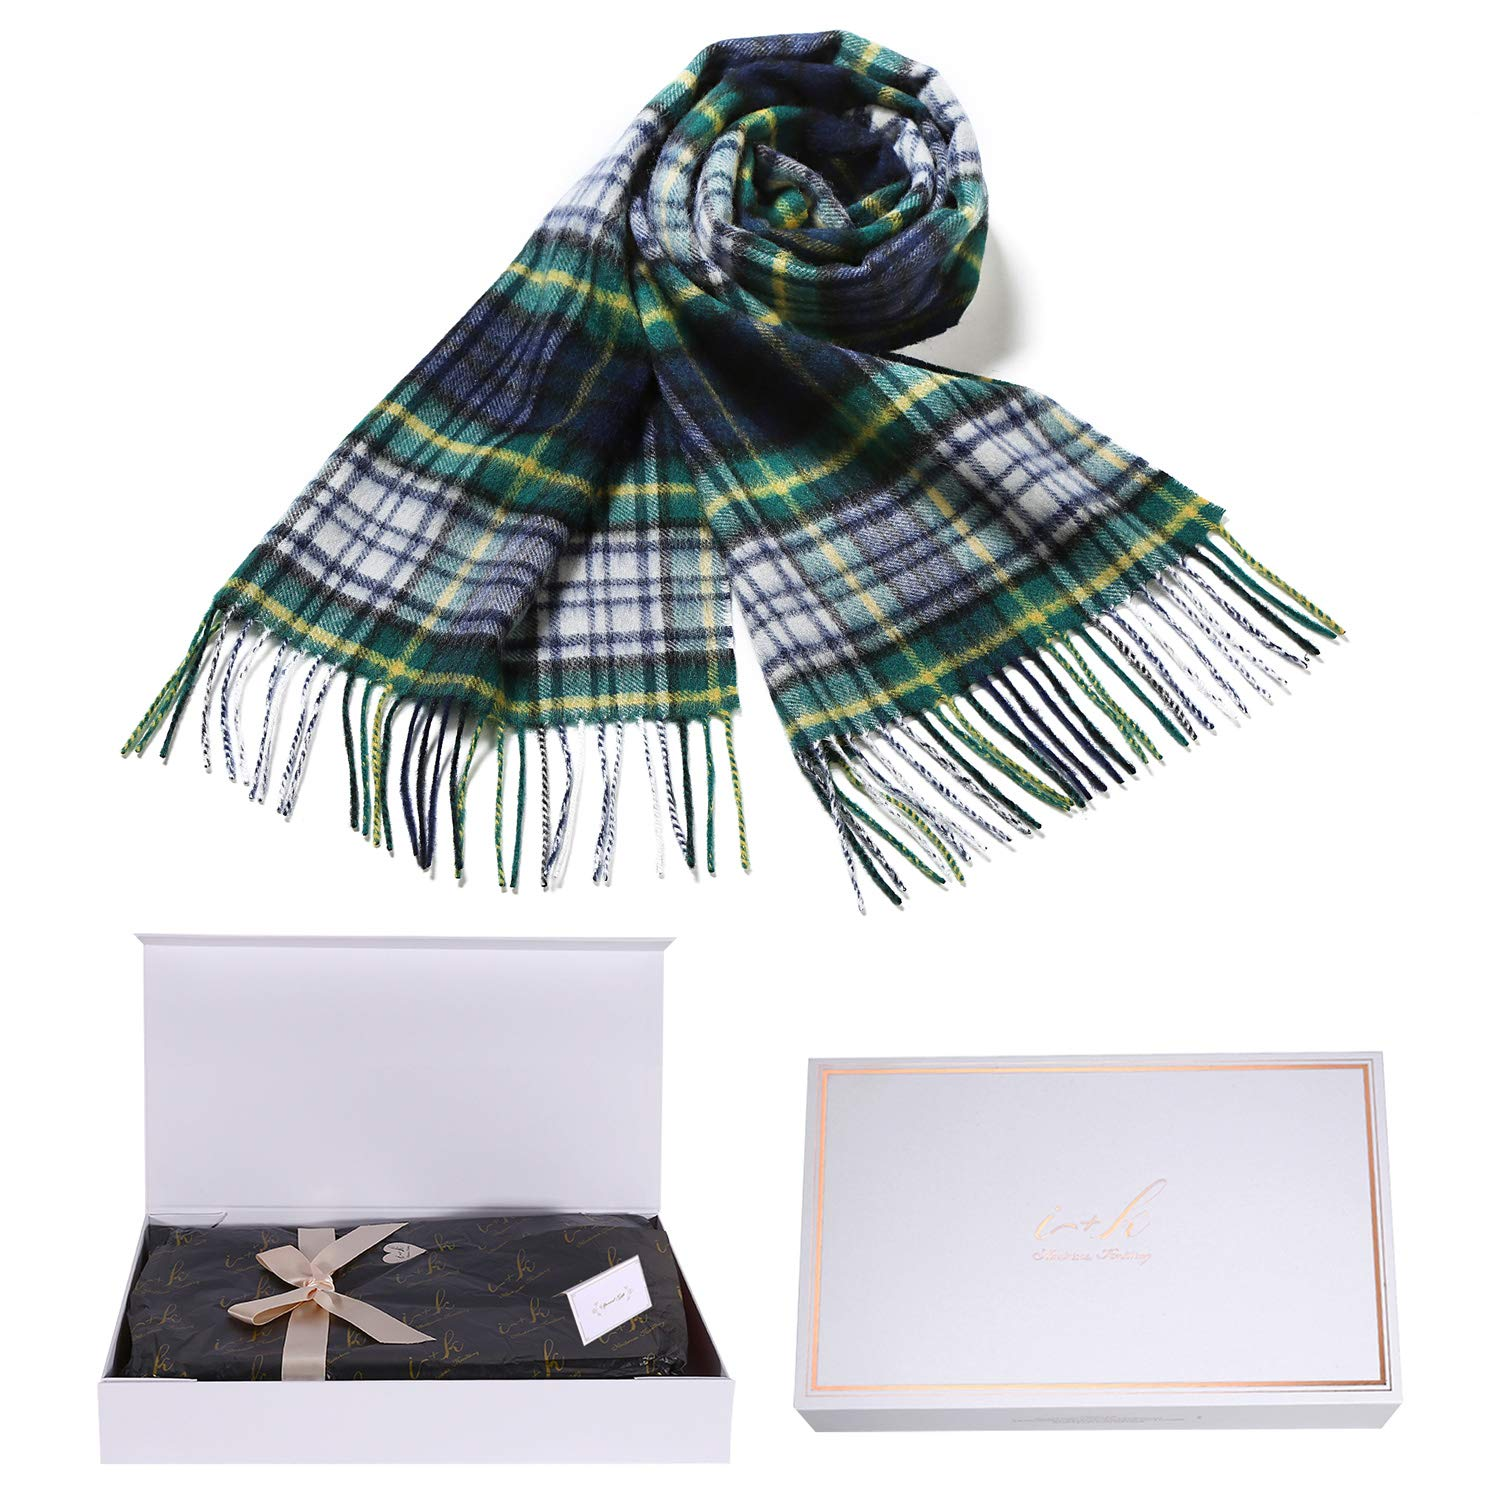 i+k 100% Pure Merino Lambswool Plaid Scarf for Women - Soft Wool Fashion Winter Warm Wrap with Gift Box (Green Grid) by i+k